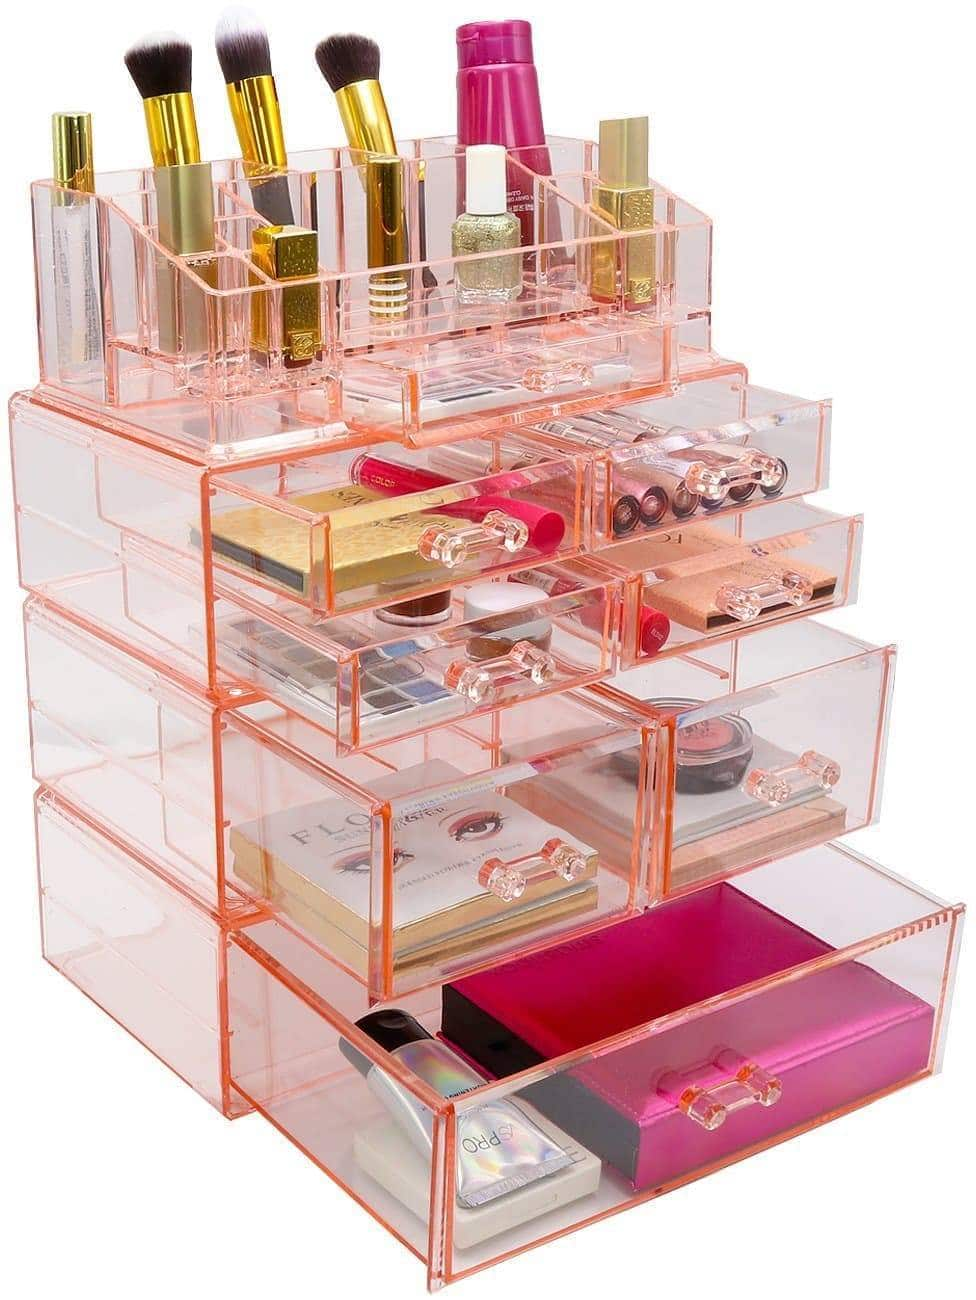 Related sorbus acrylic cosmetics makeup and jewelry storage case display sets interlocking drawers to create your own specially designed makeup counter stackable and interchangeable pink 1